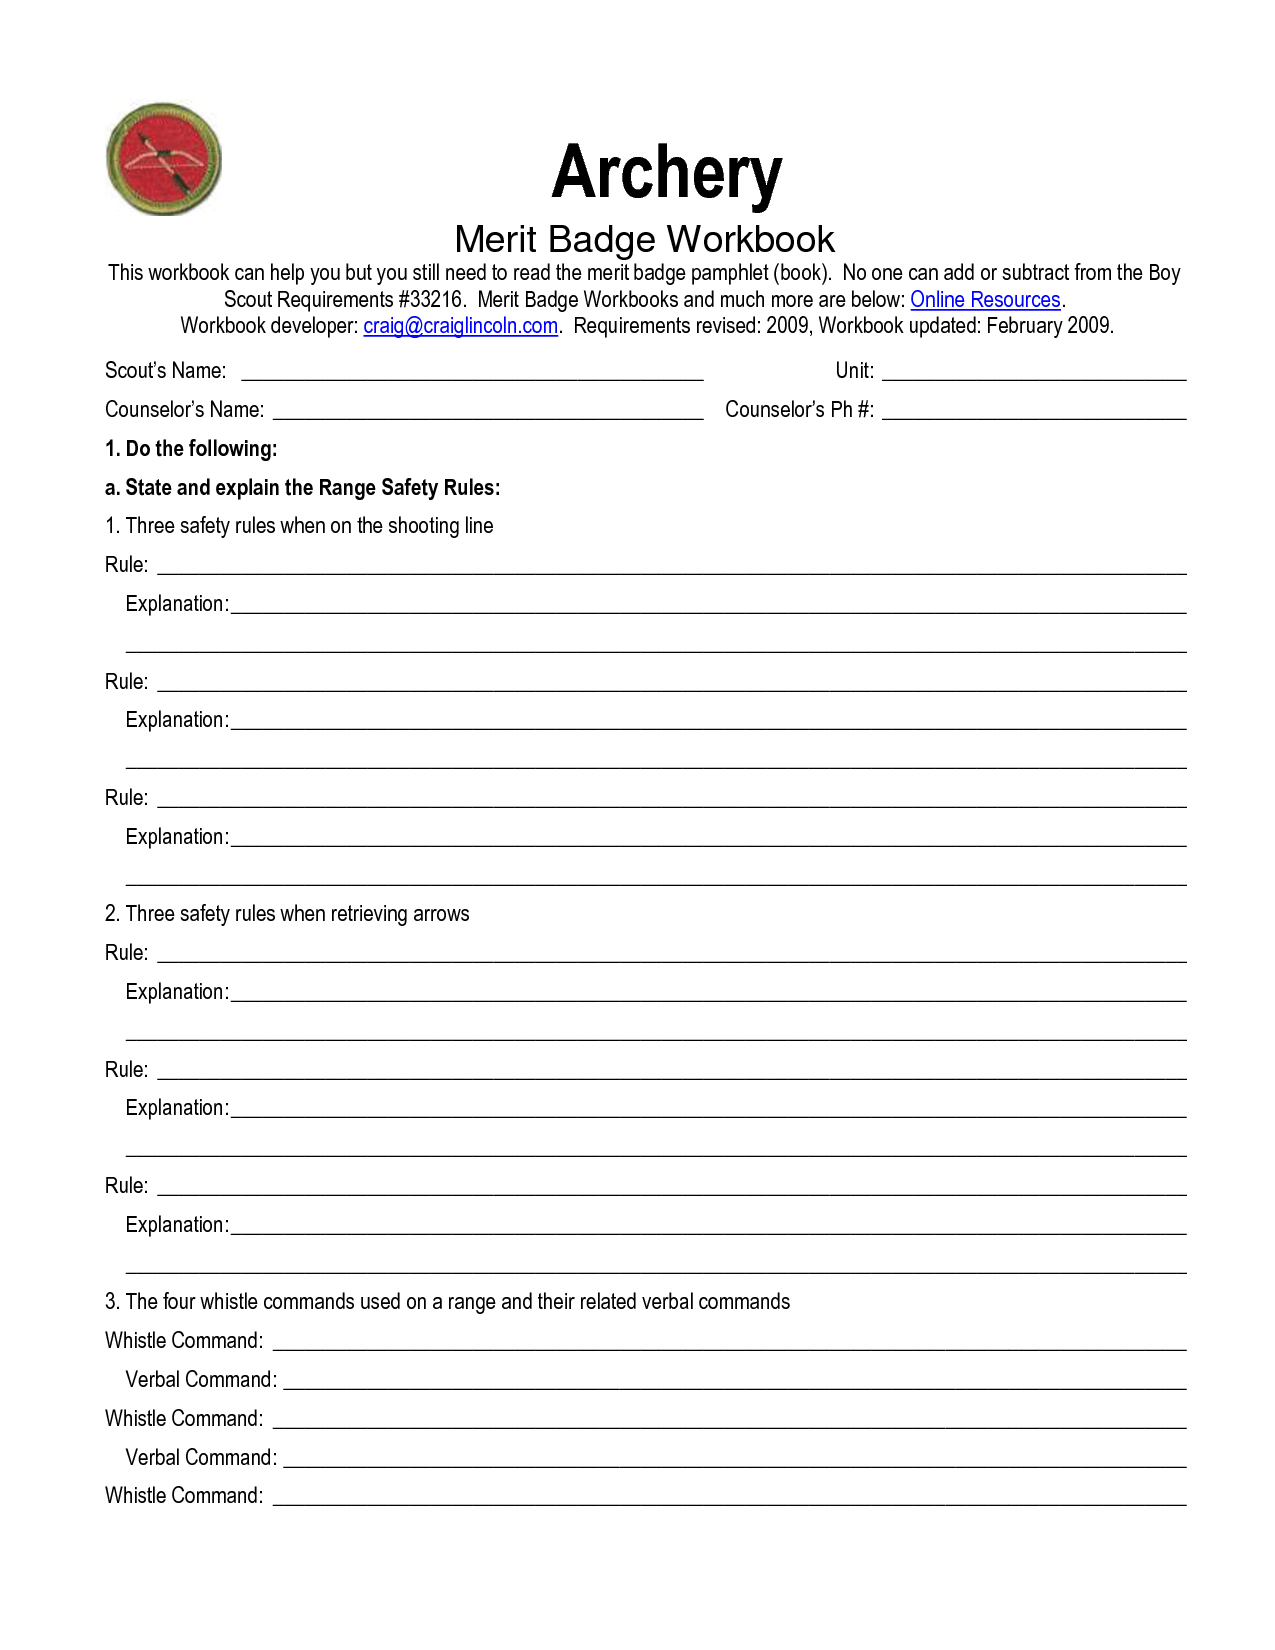 Swimming Merit Badge Worksheet